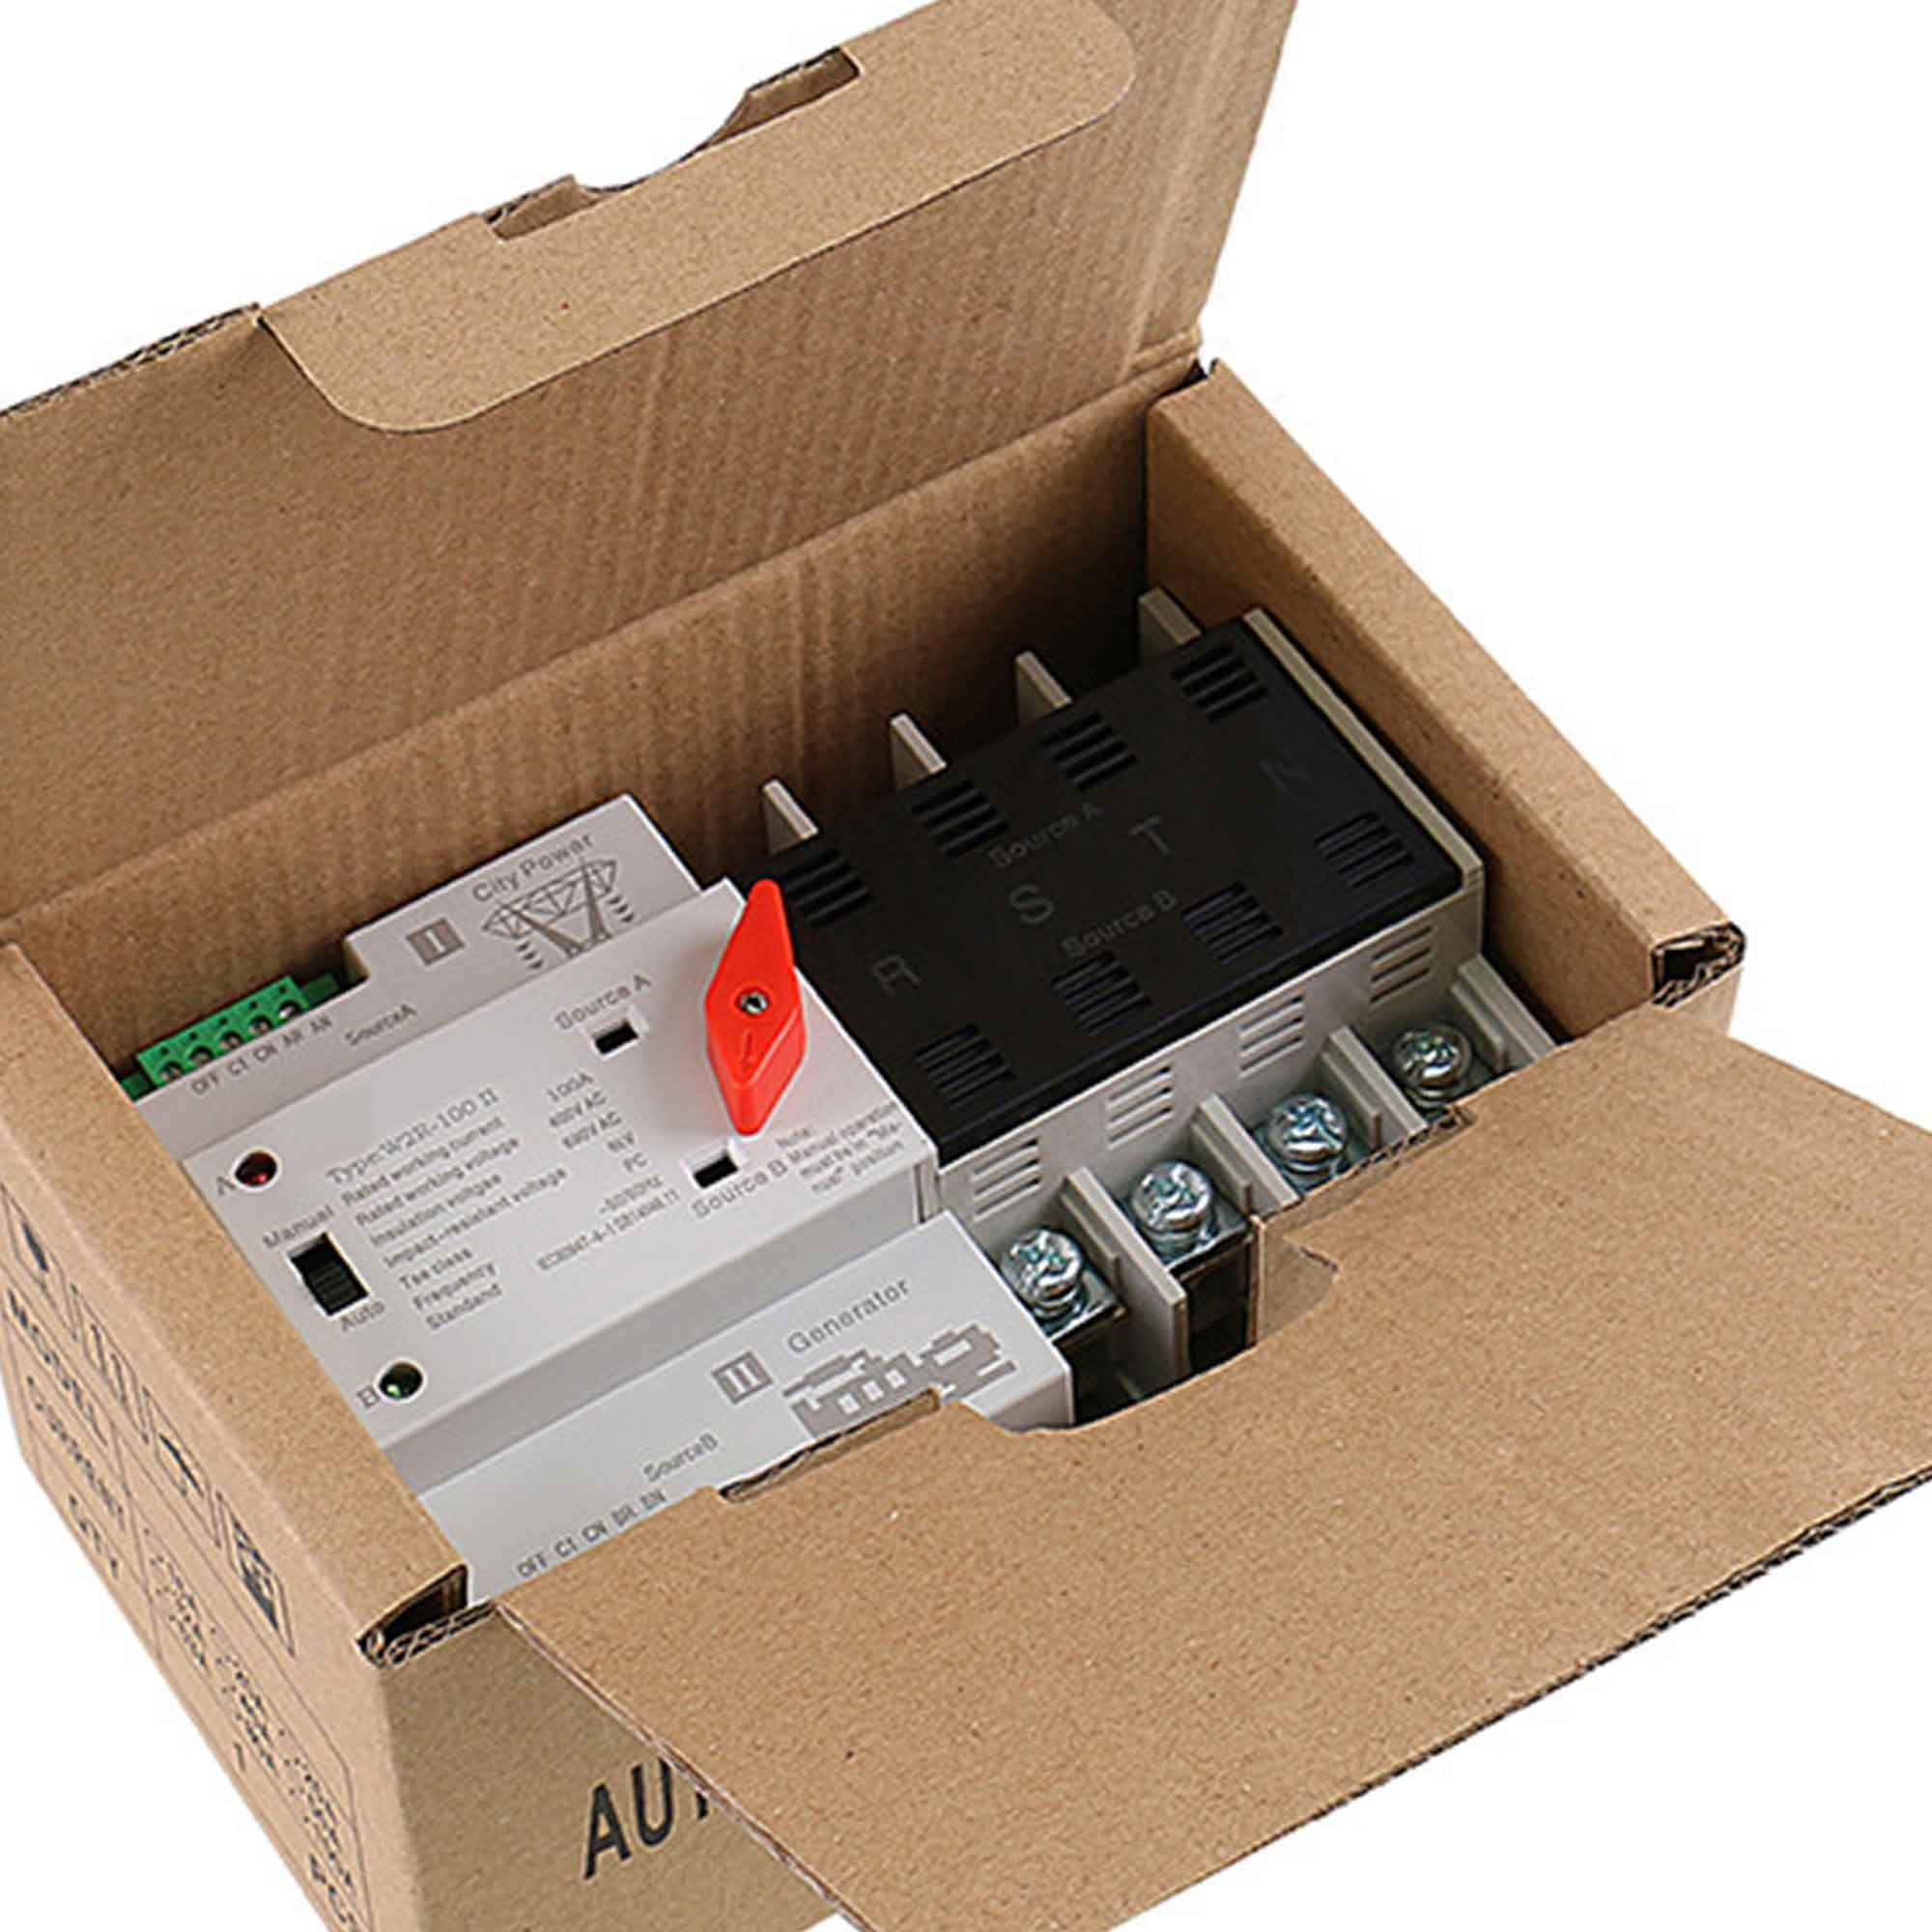 GAEYAELE W2R Mini ATS 4P Automatic Transfer Switch Controller Electrical Type ATS Max 100A 4POLE (W2R-4P 100A) by GAEYAELE (Image #6)